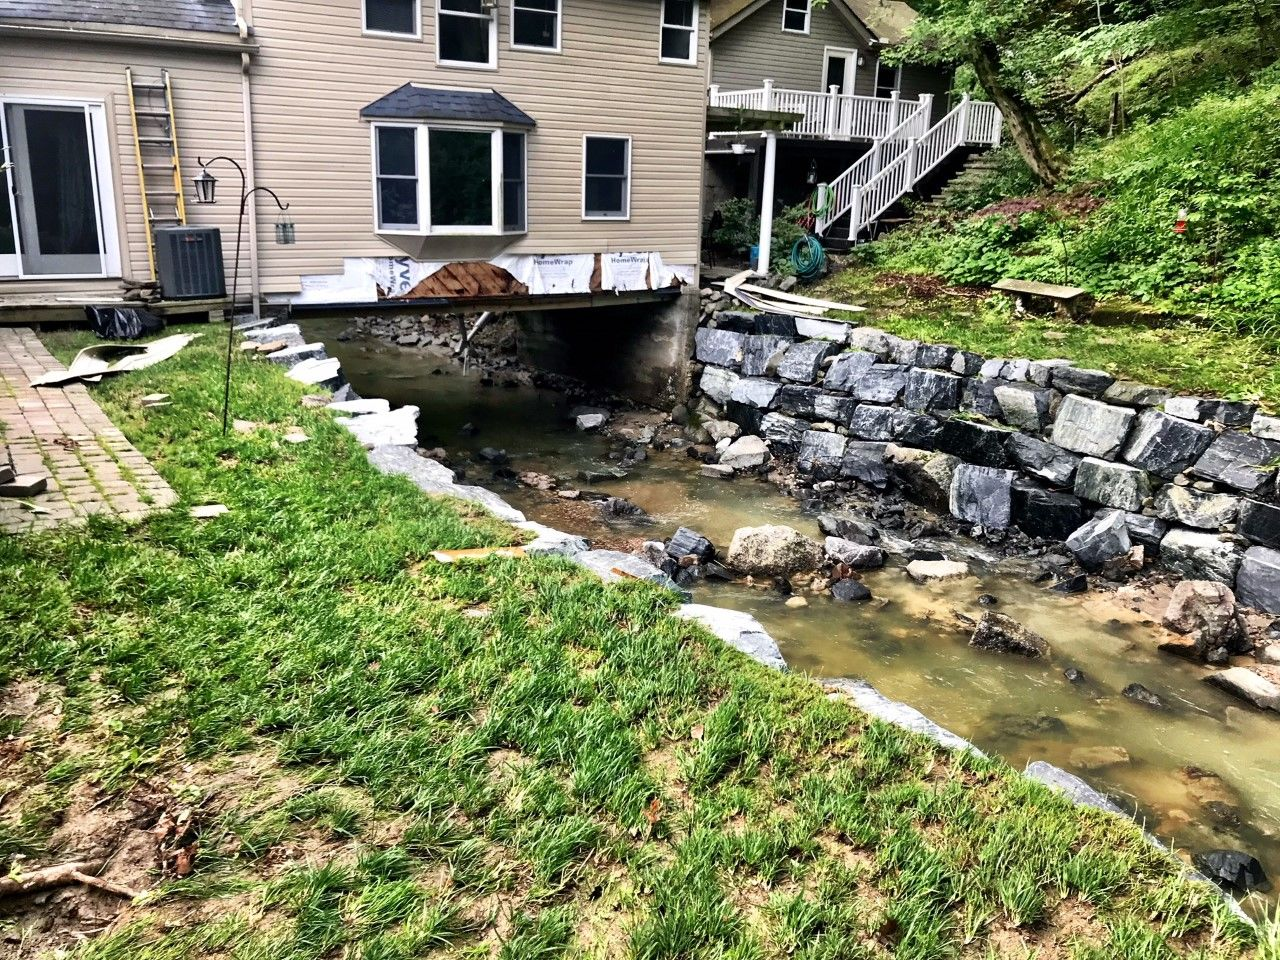 Some homes in Ellicott City are built over waterways. This home on Main Street has the Tiber Creek flowing beneath it. (WTOP/Neal Augenstein)